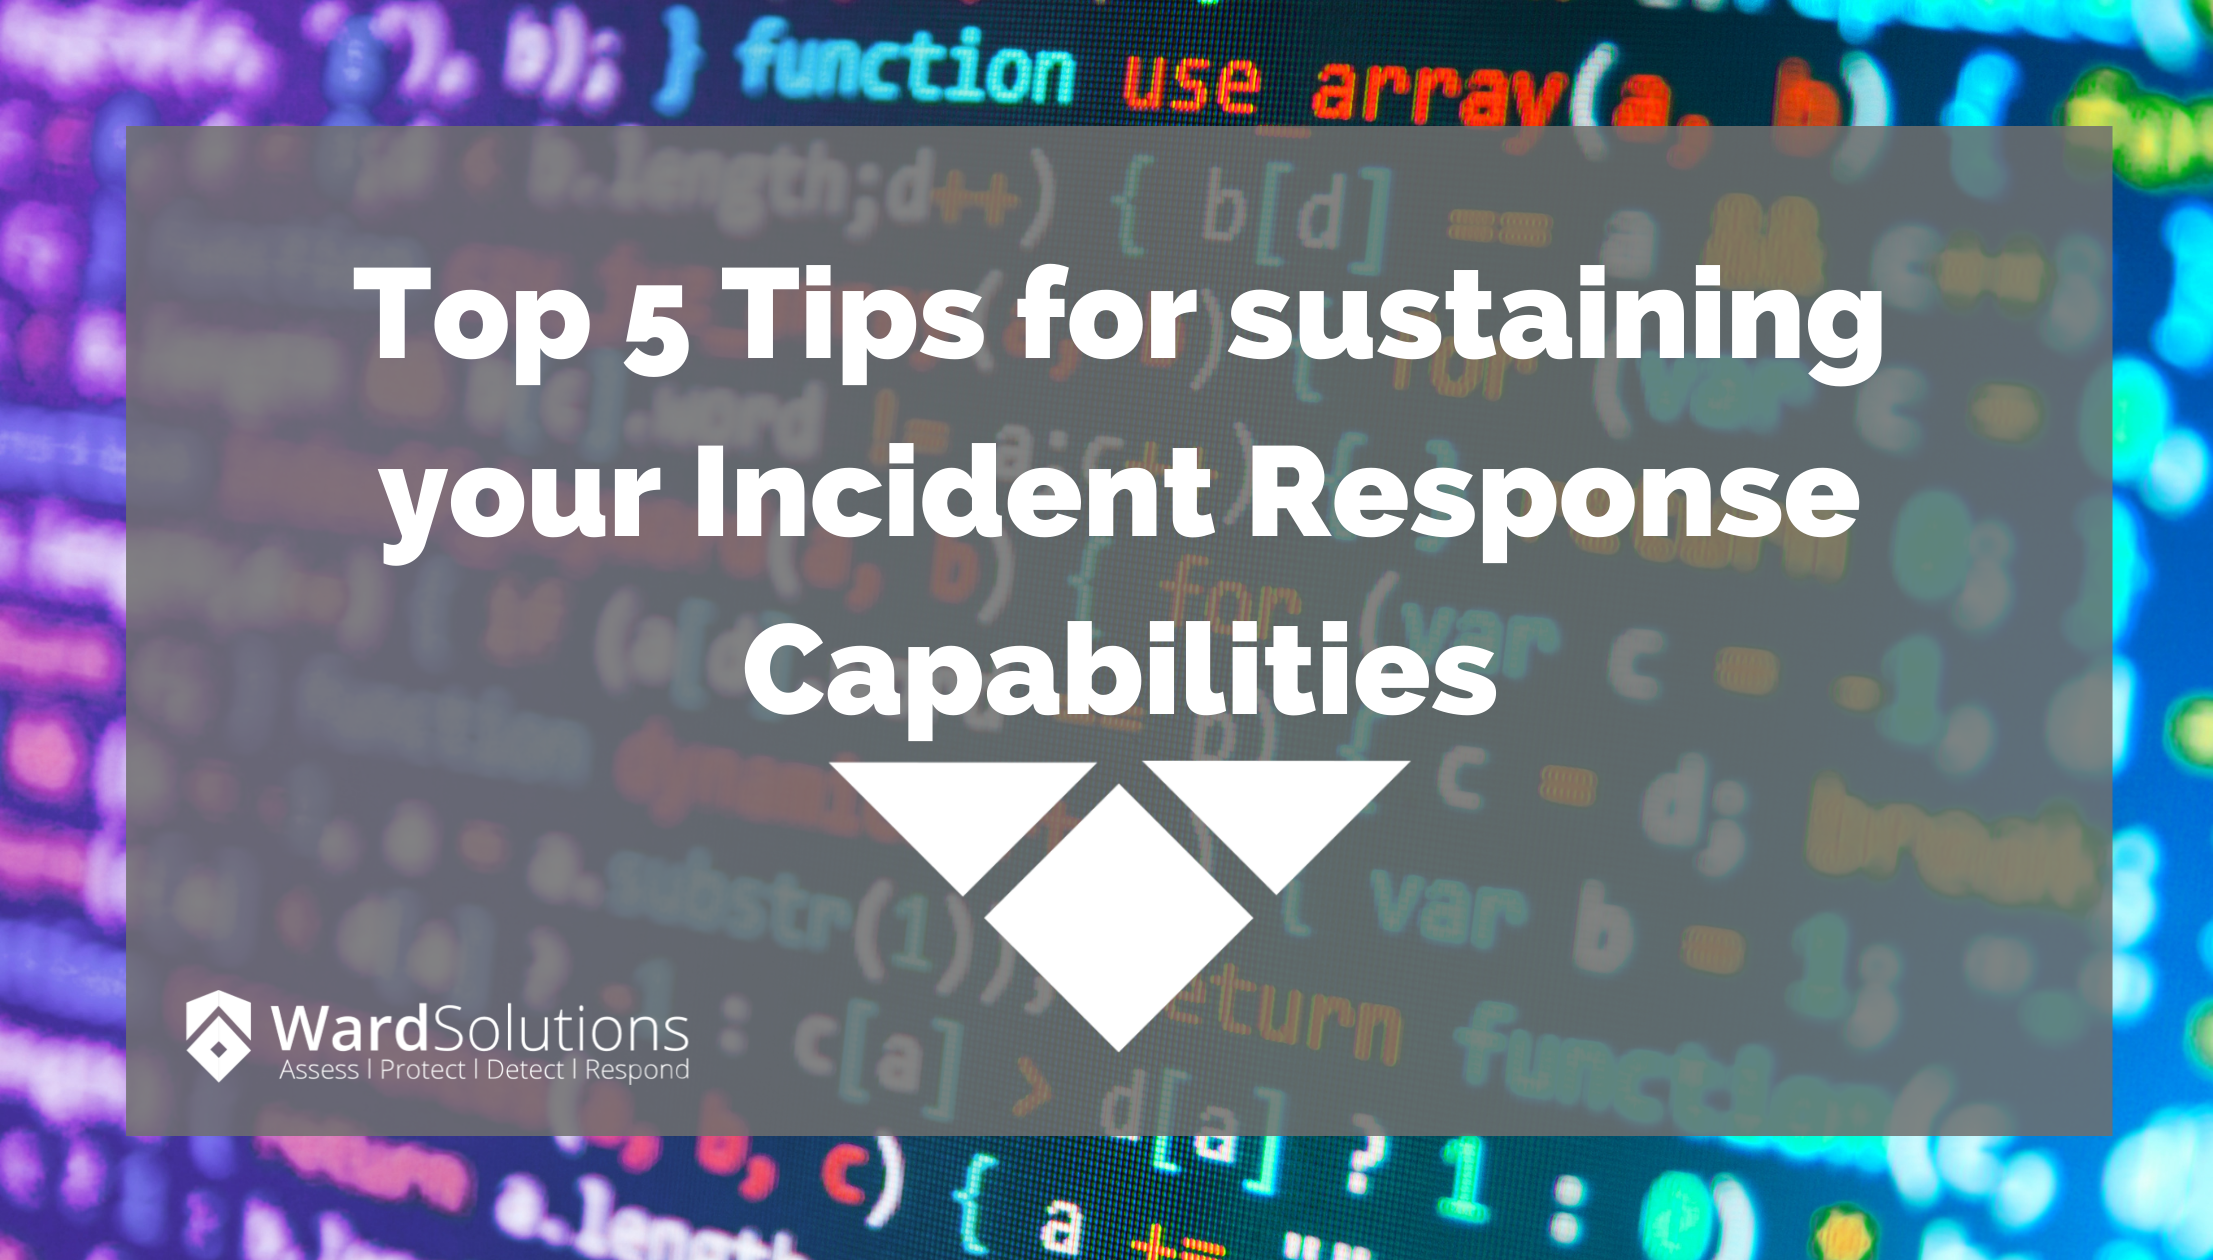 Top 5 Tips for sustaining your Incident Response Capabilities